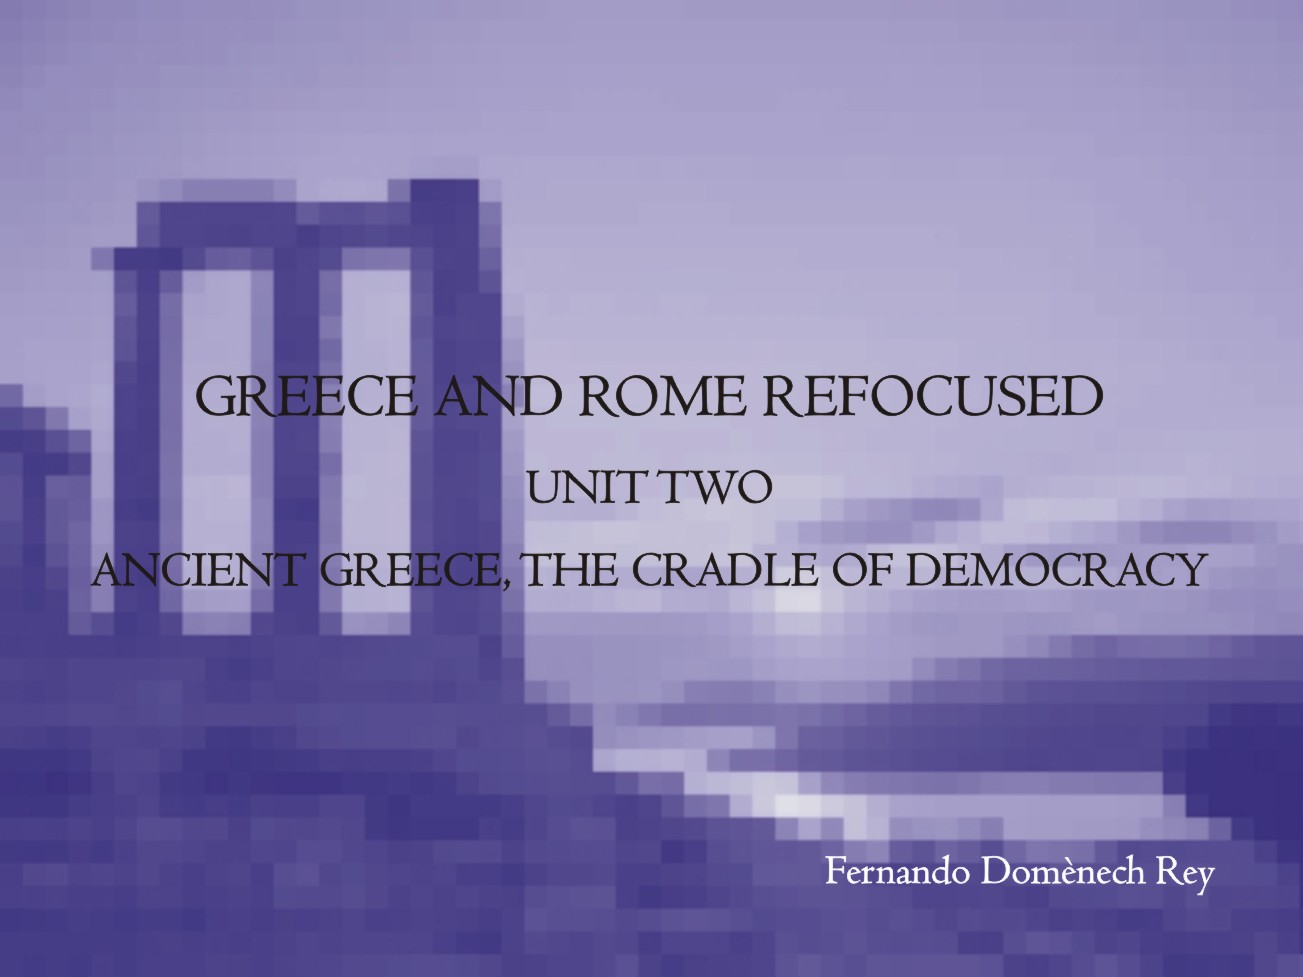 a history of democracy in ancient greece and rome Origins of democracy in ancient greece / kurt a raaflaub, josiah ober democracy—greece—history—to 1500 2 interests focus on archaic and classical greek and roman republican social, political.